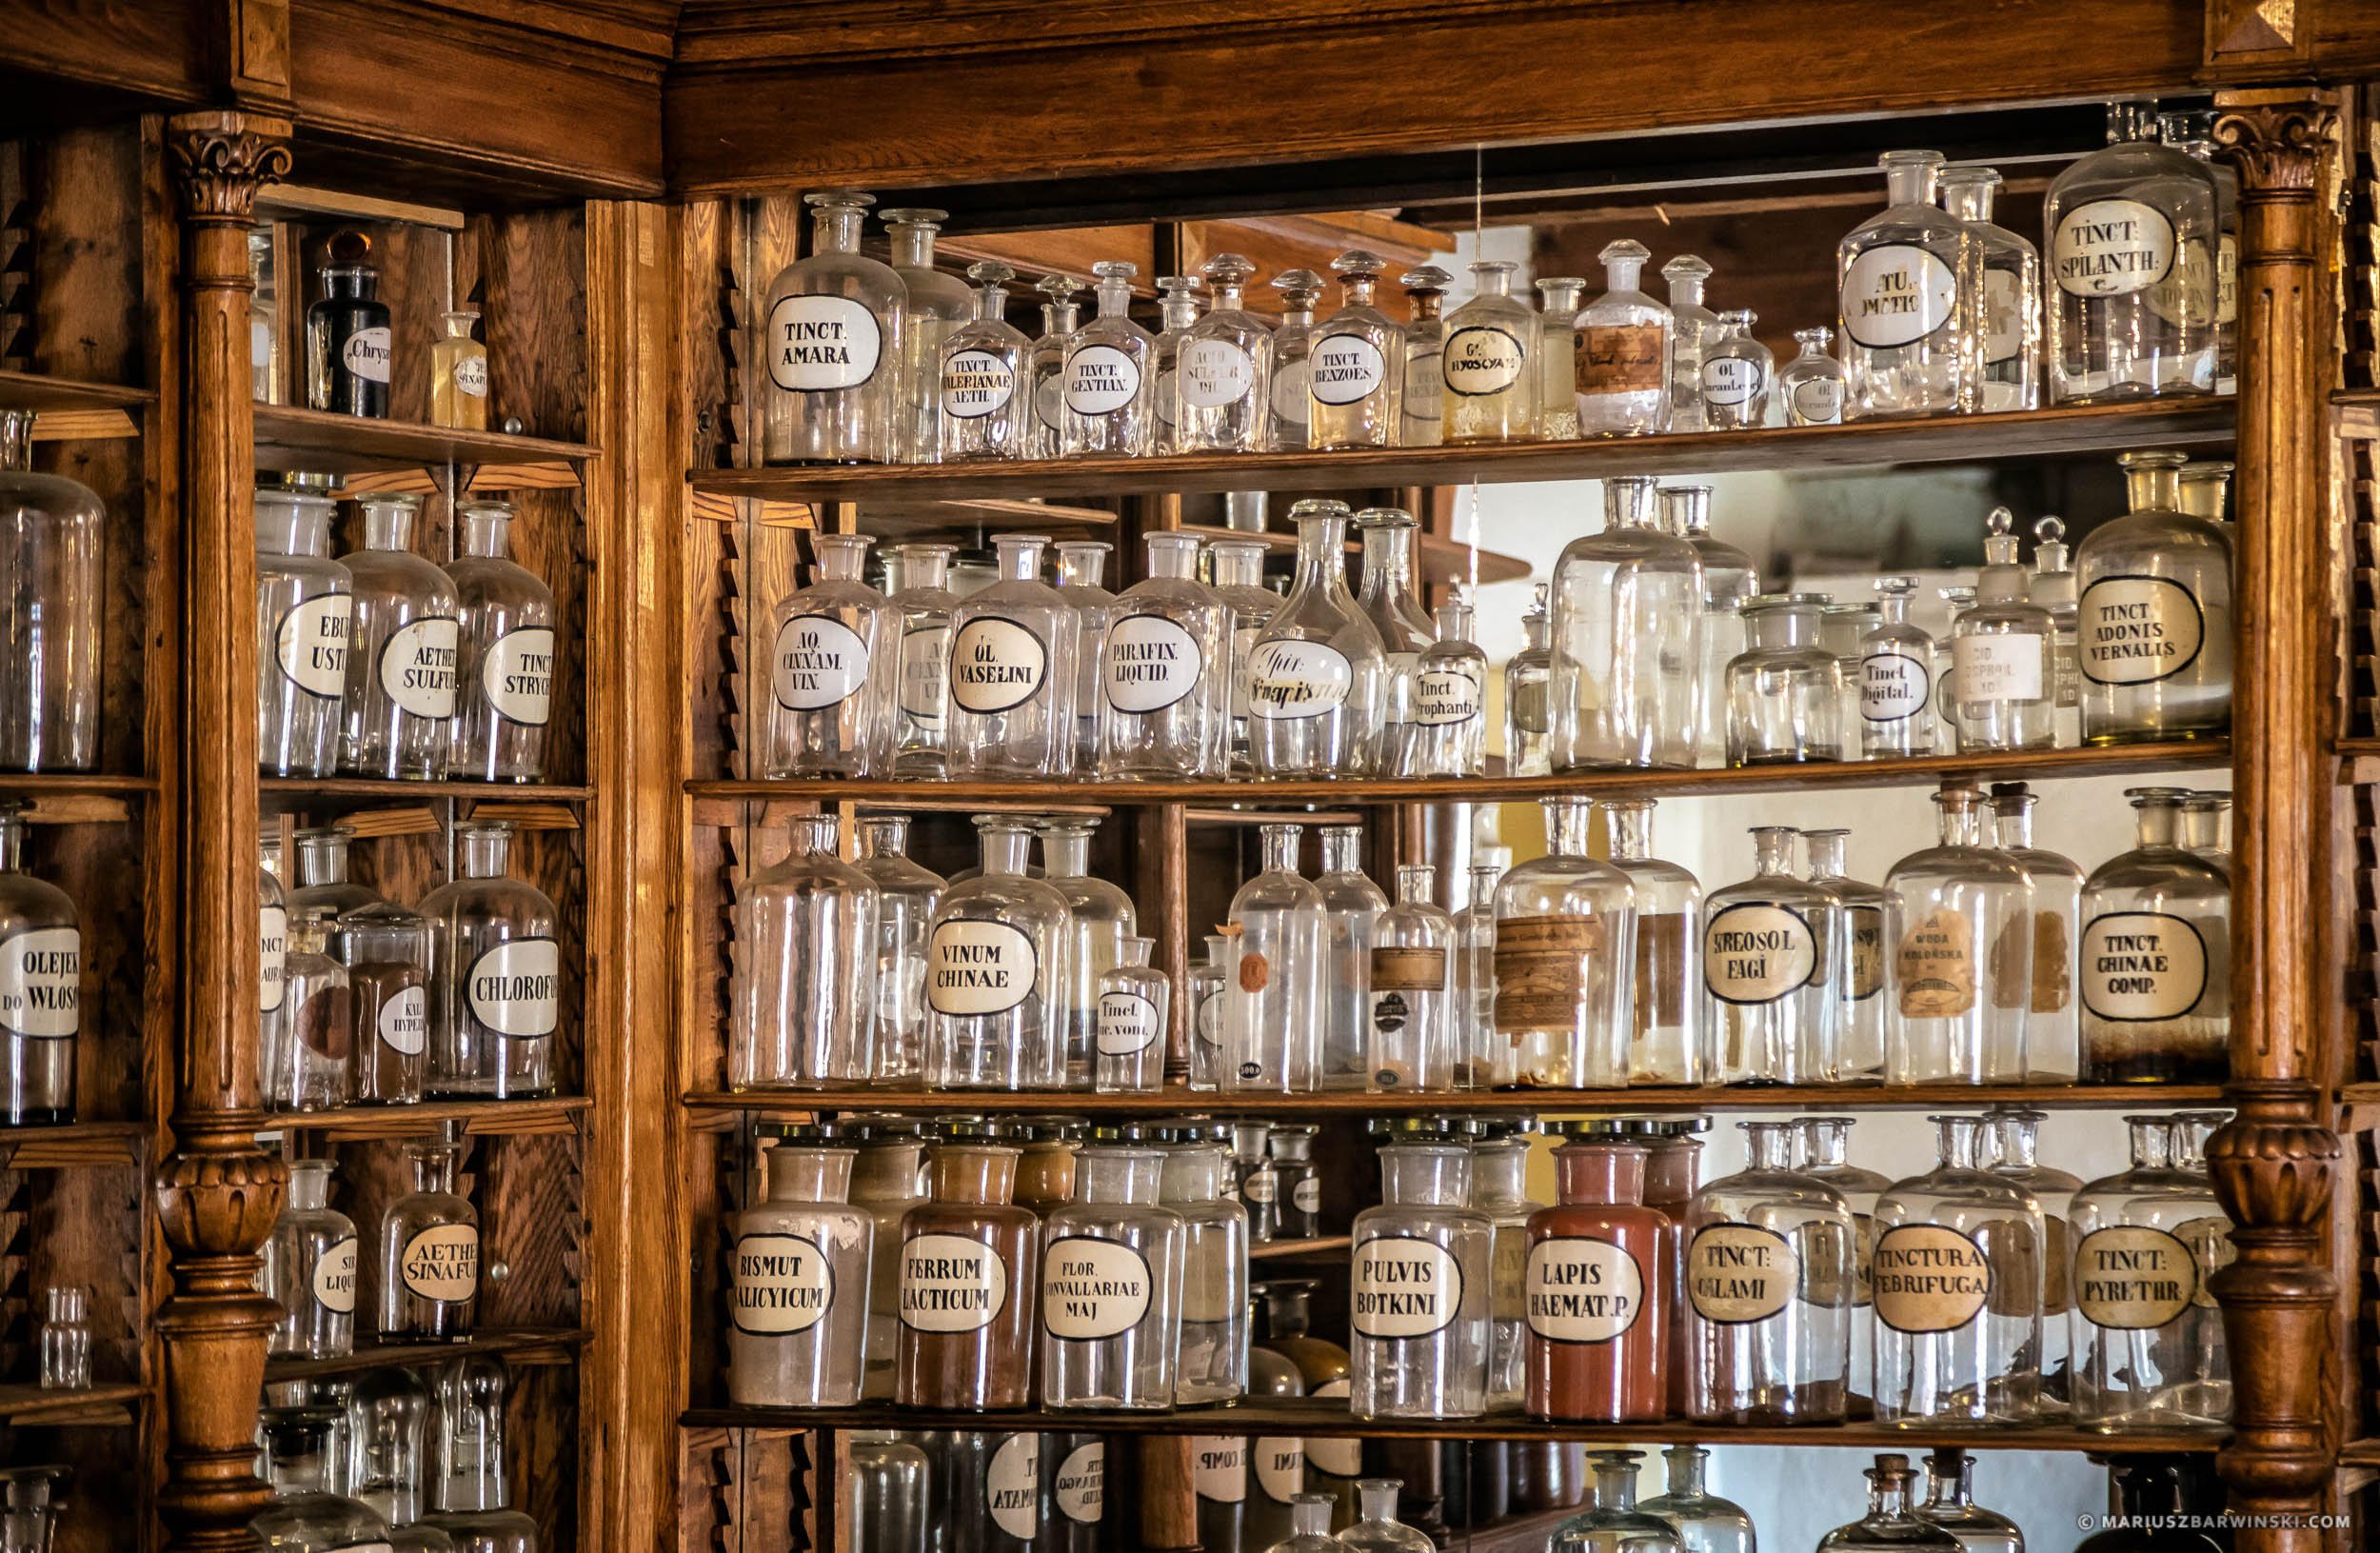 The interior of an old pharmacy. Open-air museum in Tokarnia. Wn